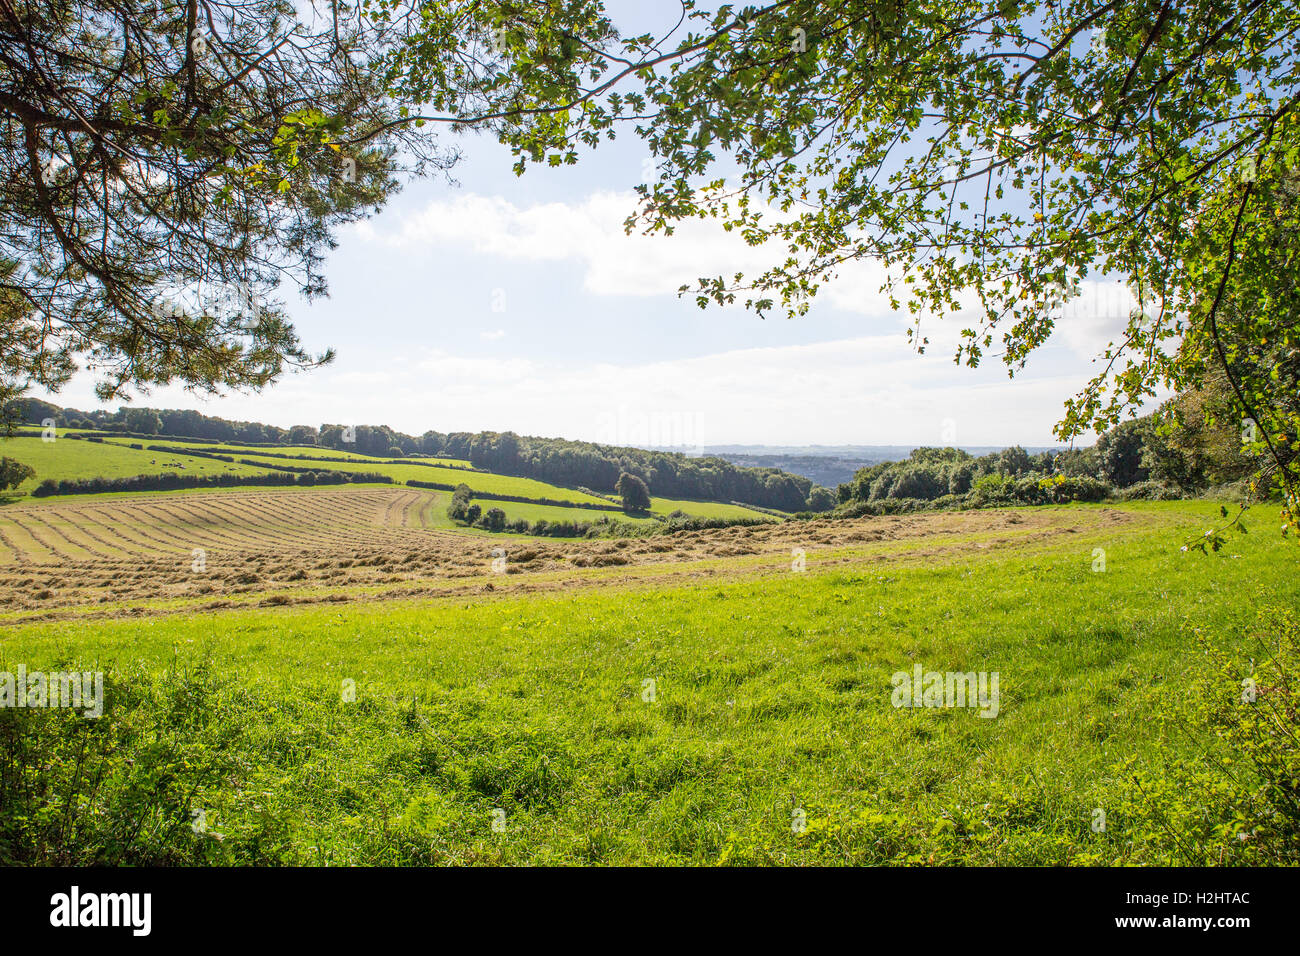 Making hay while the sun shines. Stock Photo